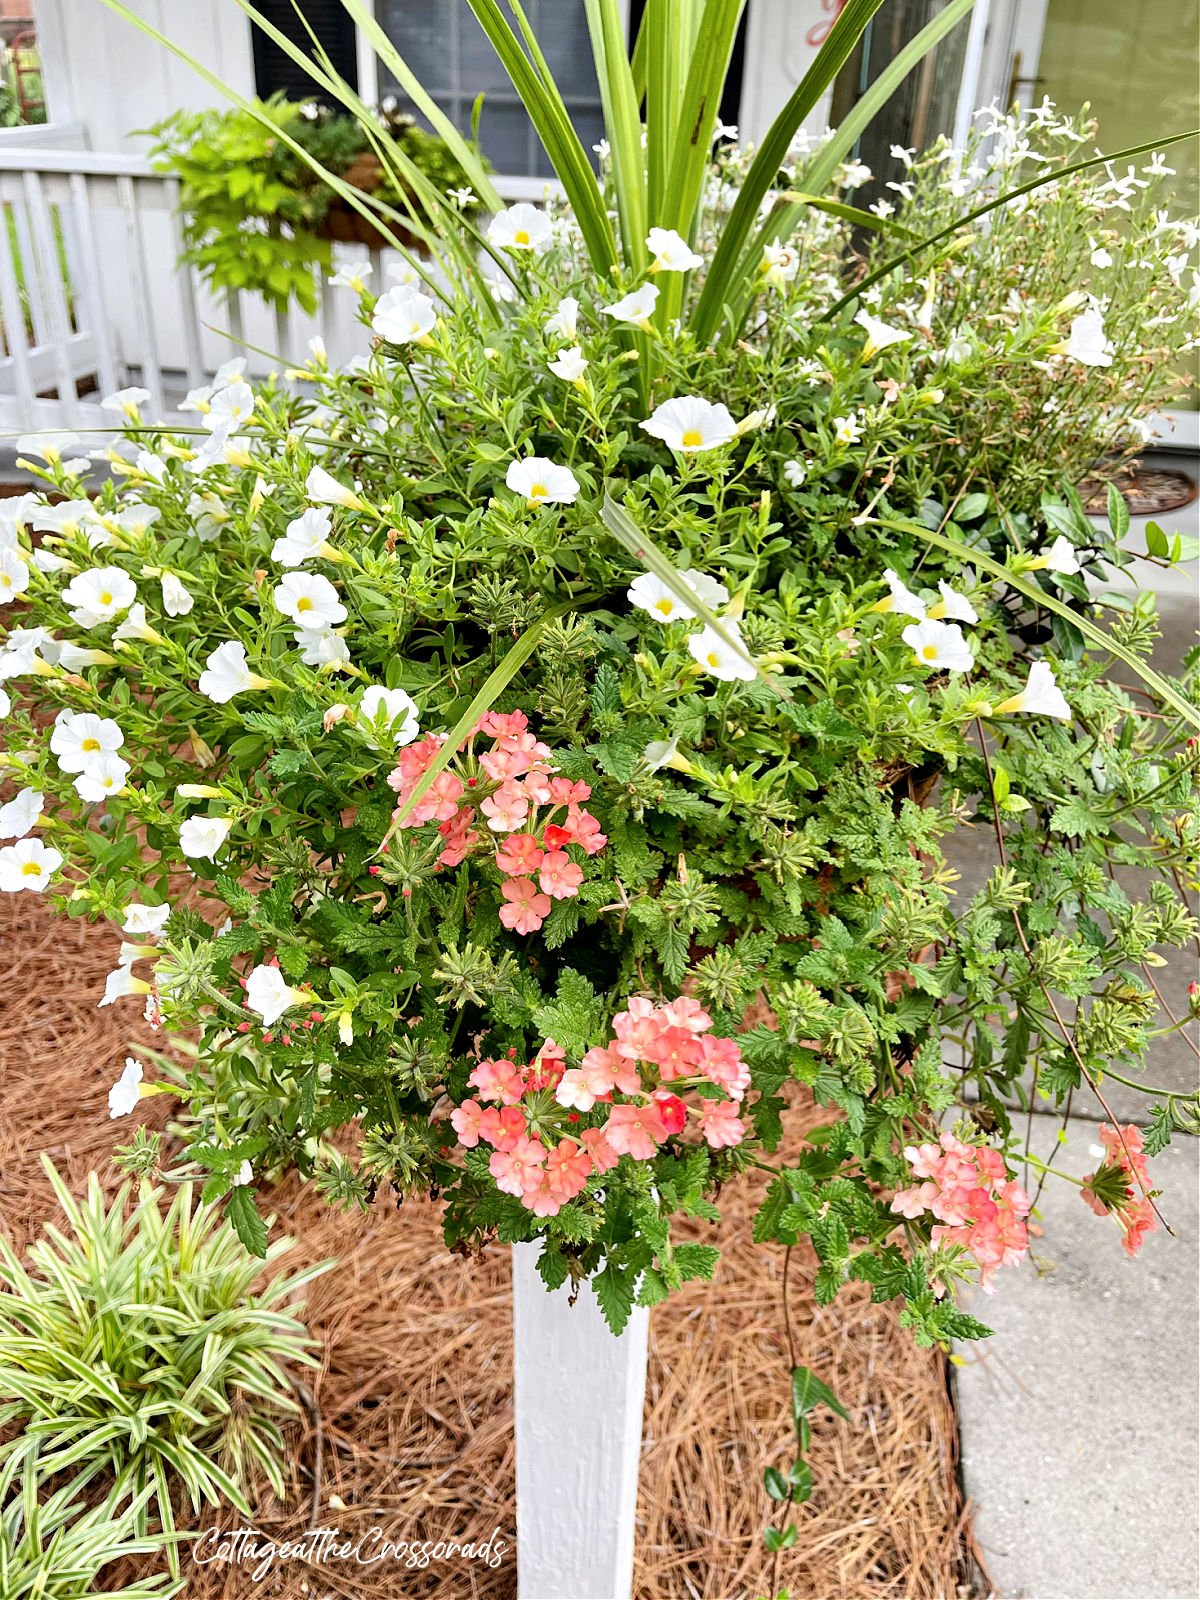 coral verbena and white million bells planted in a basket on a wooden post